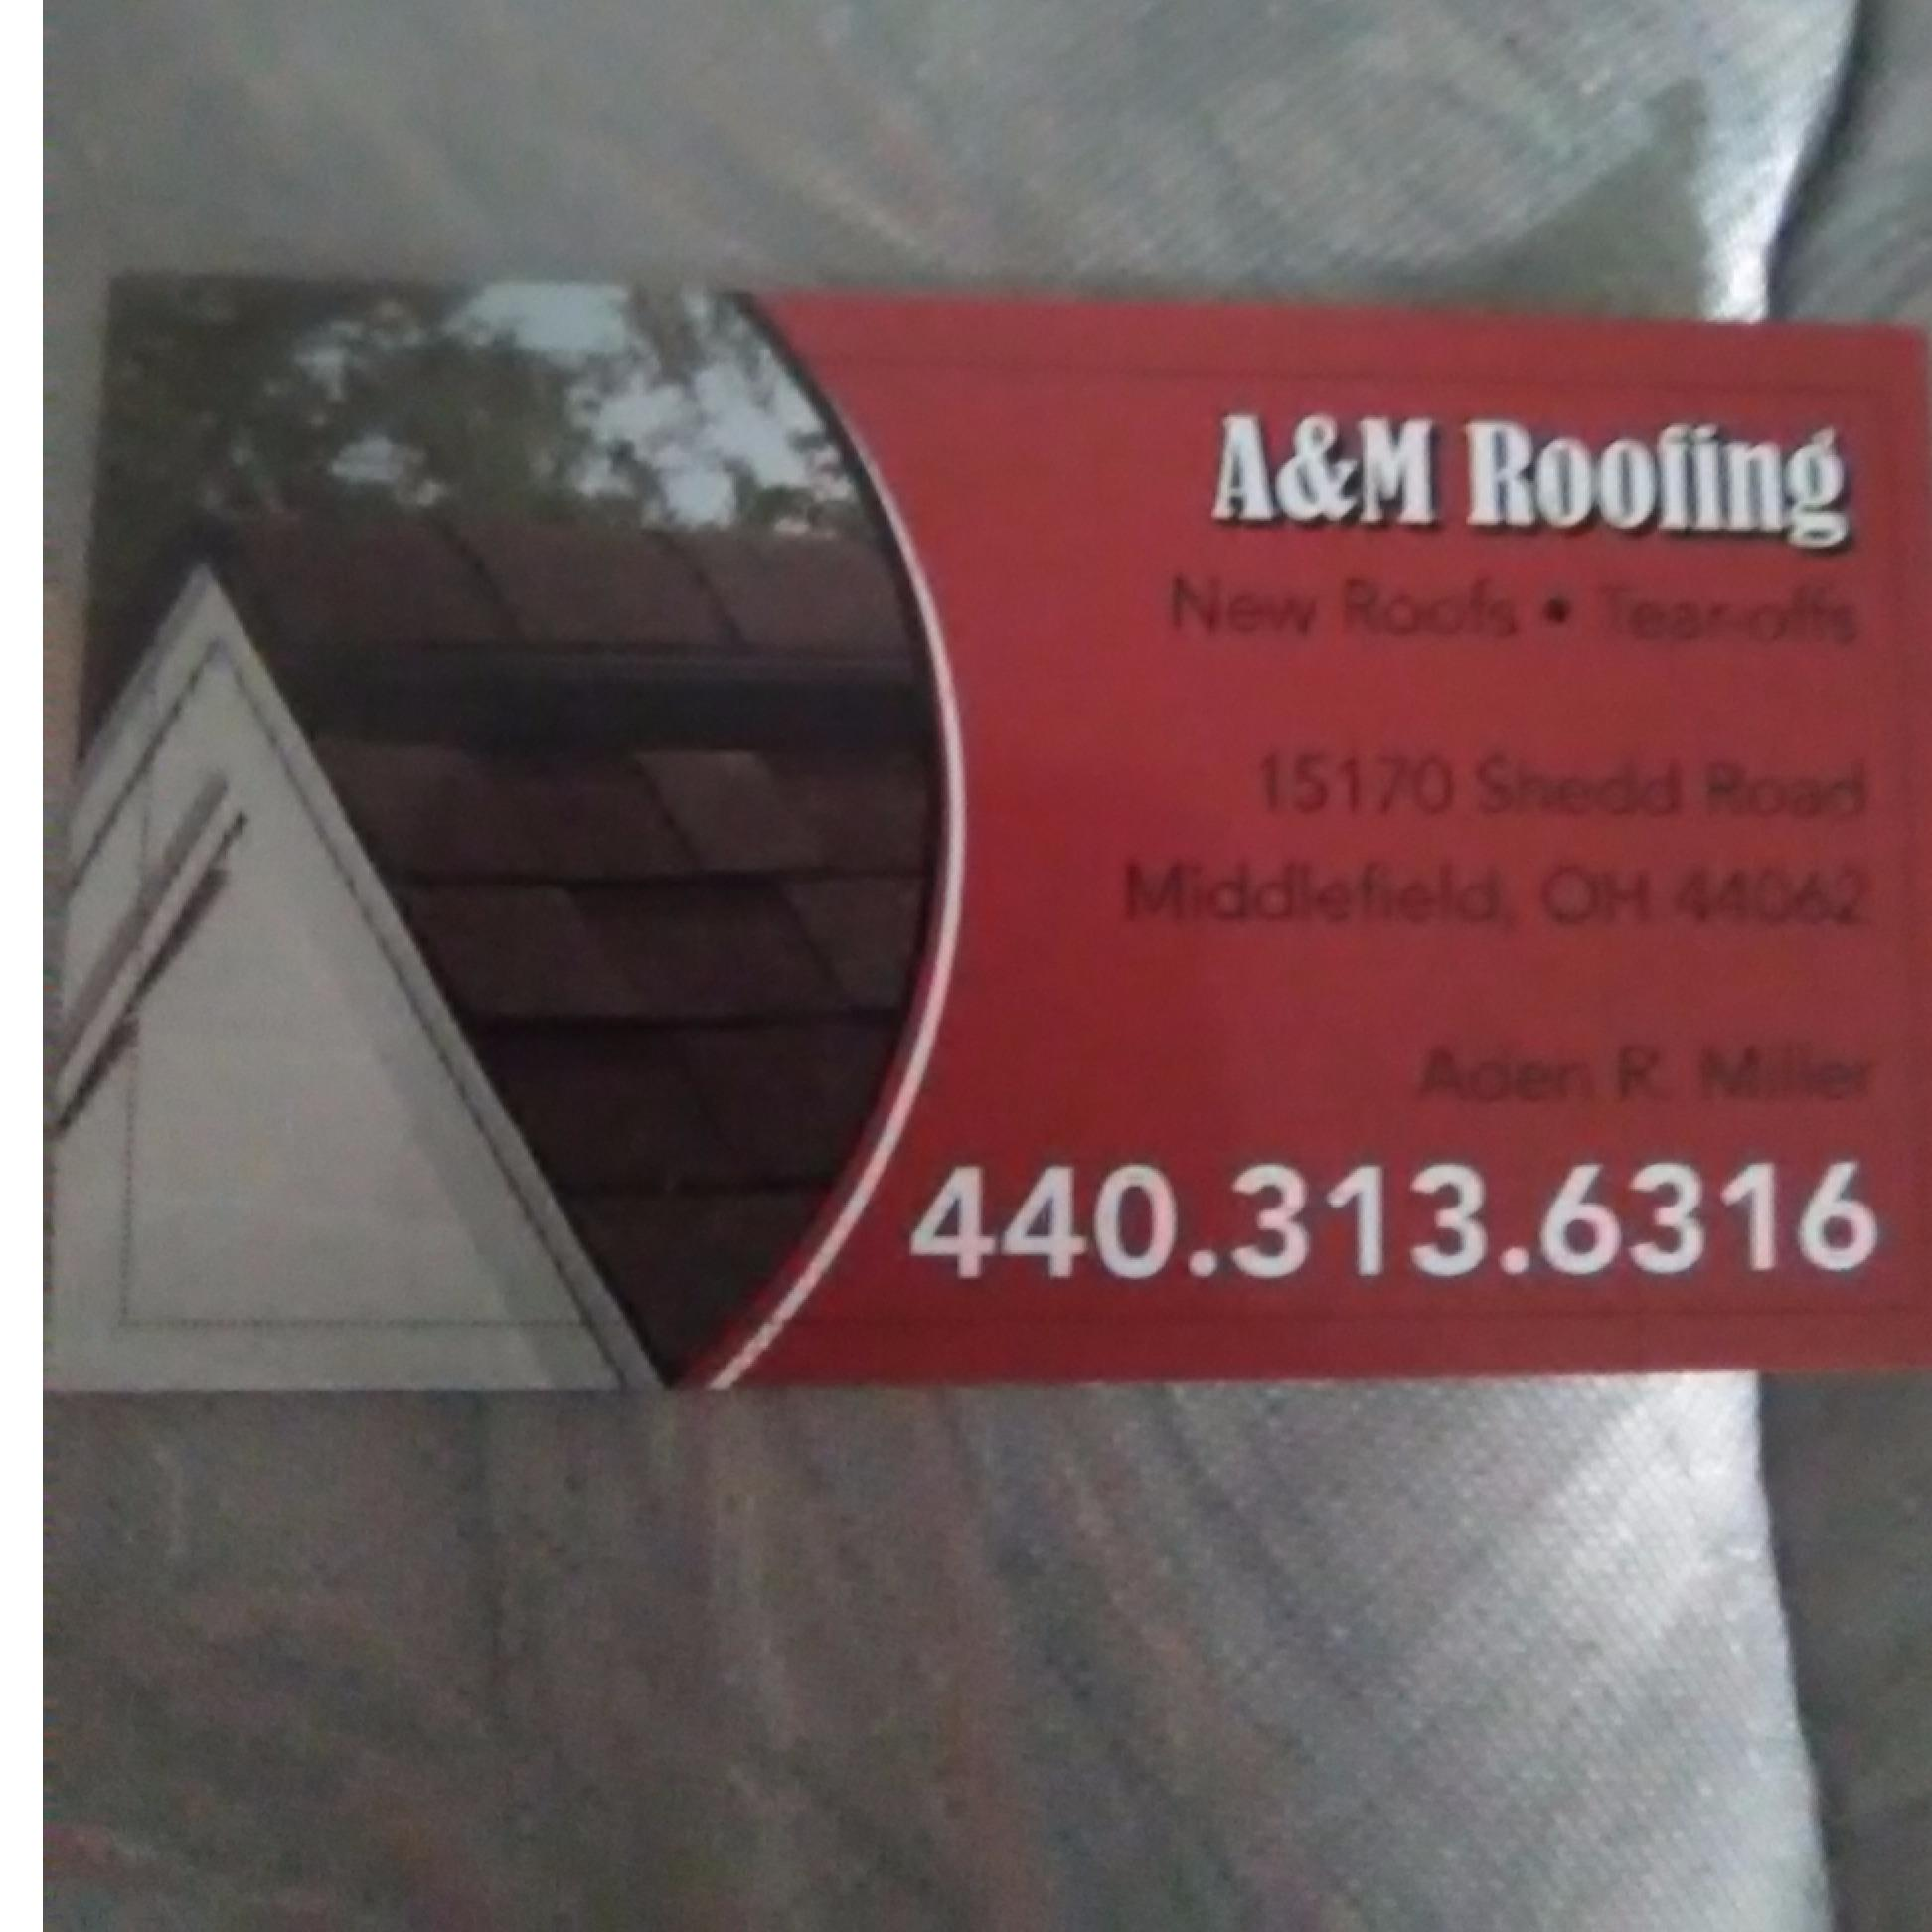 A & M Roofing - Middlefield, OH - Roofing Contractors